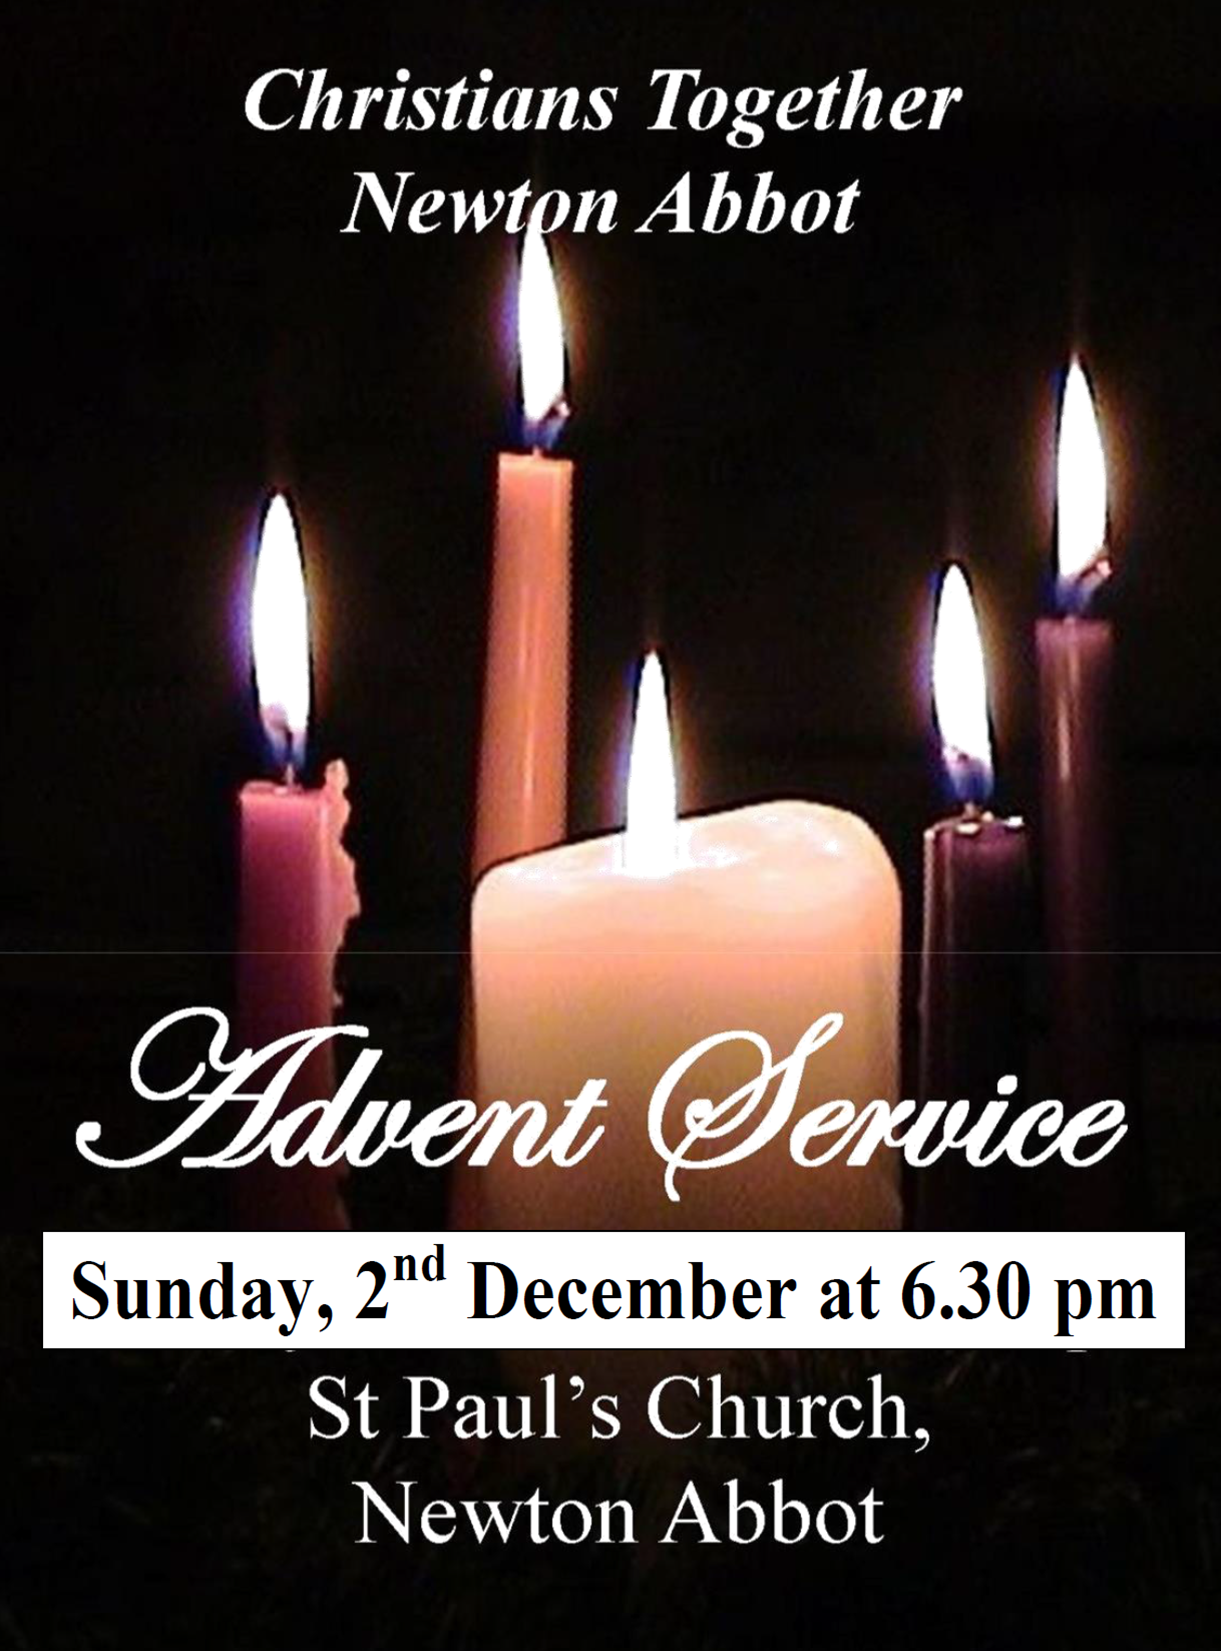 Christians Together Advent Service @ St. Paul's Church, Newton Abbot